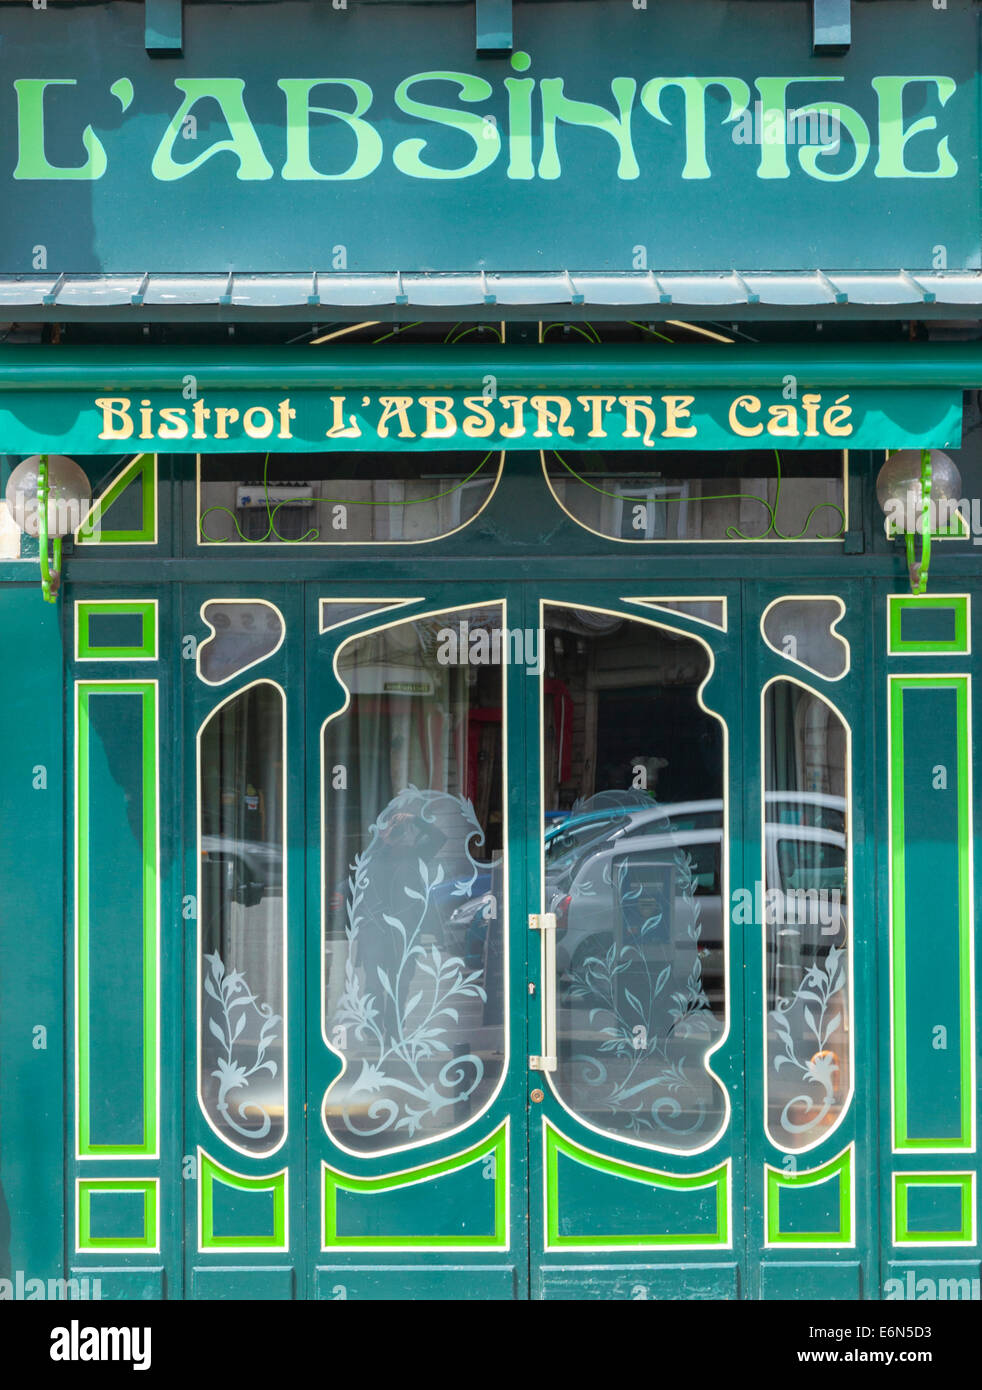 Absinthe cafe bistrot in Grenoble, Rhone-Alpes, France - Stock Image